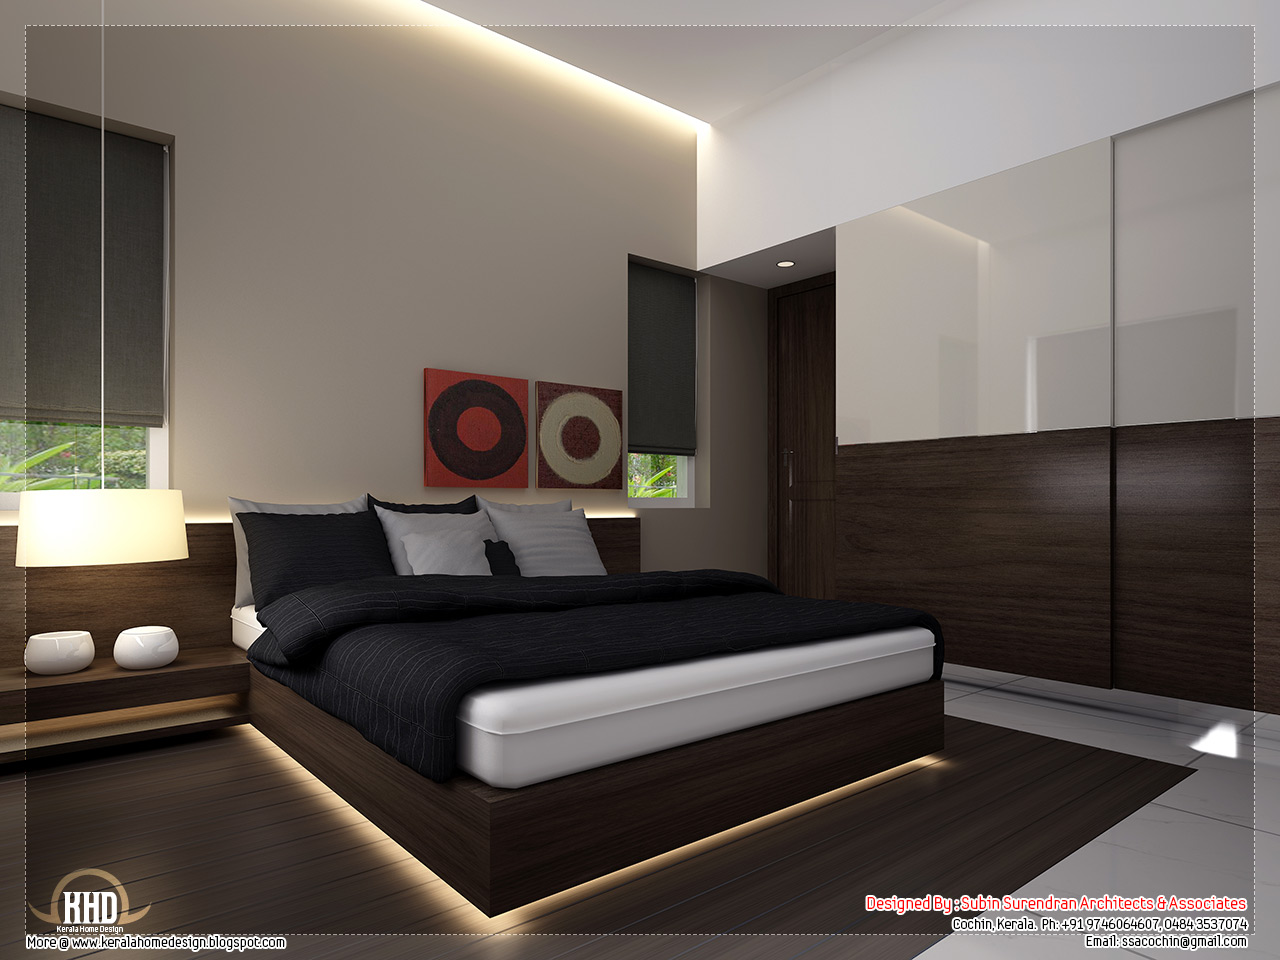 Beautiful home interior designs kerala home design and for Bed room interior design images